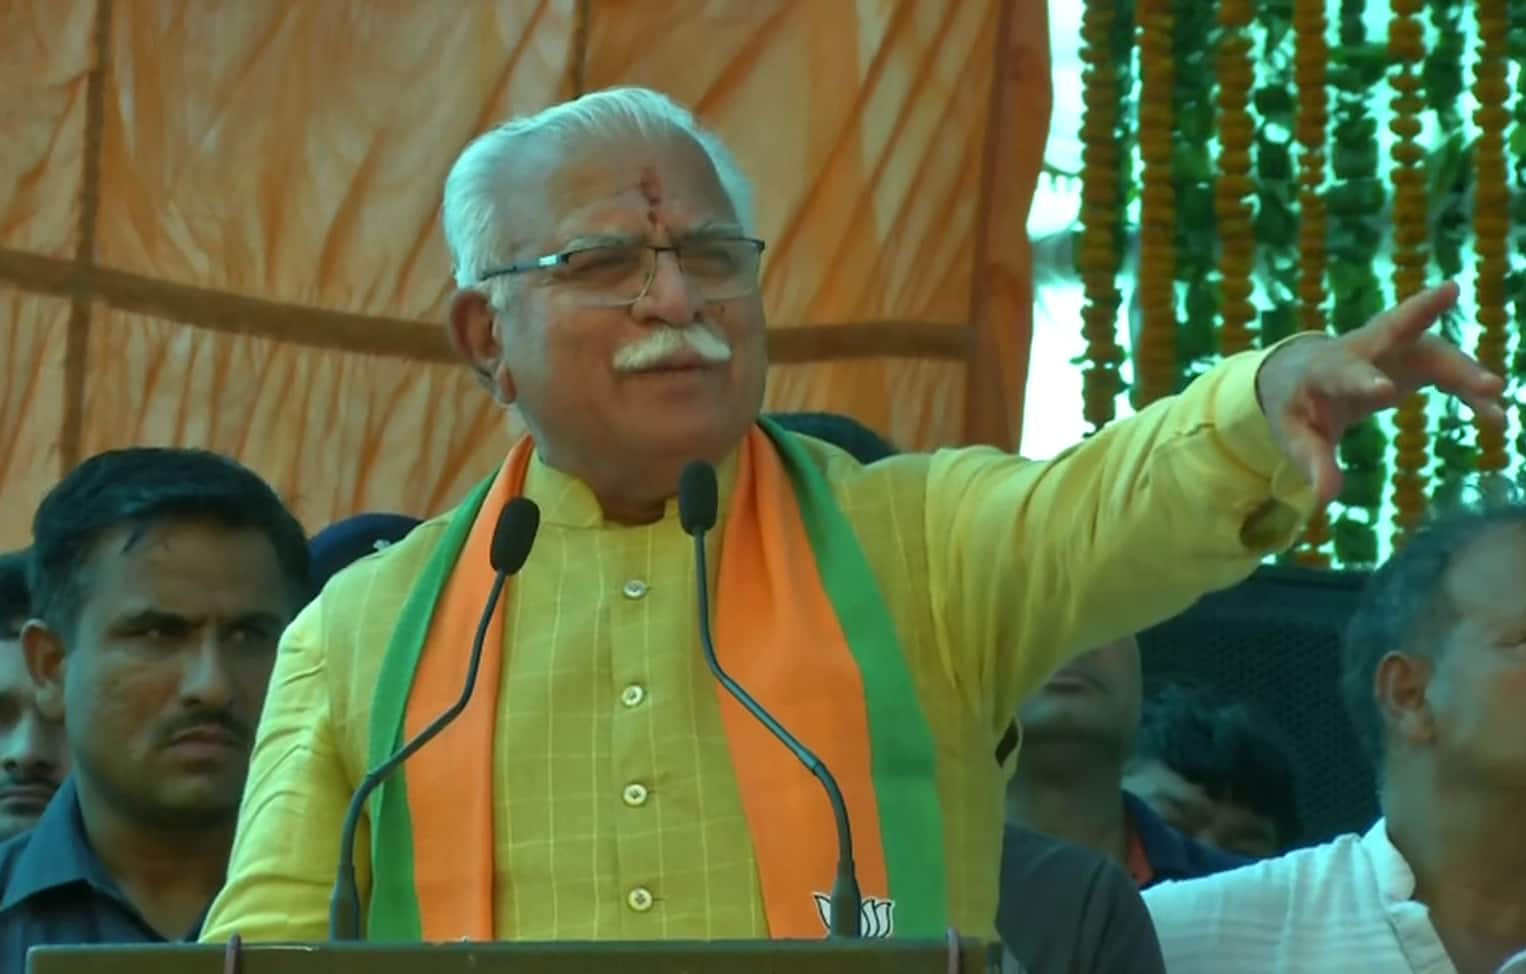 MLA who poses challenge to Manohar Lal Khattar government in Haryana is BJP rebel